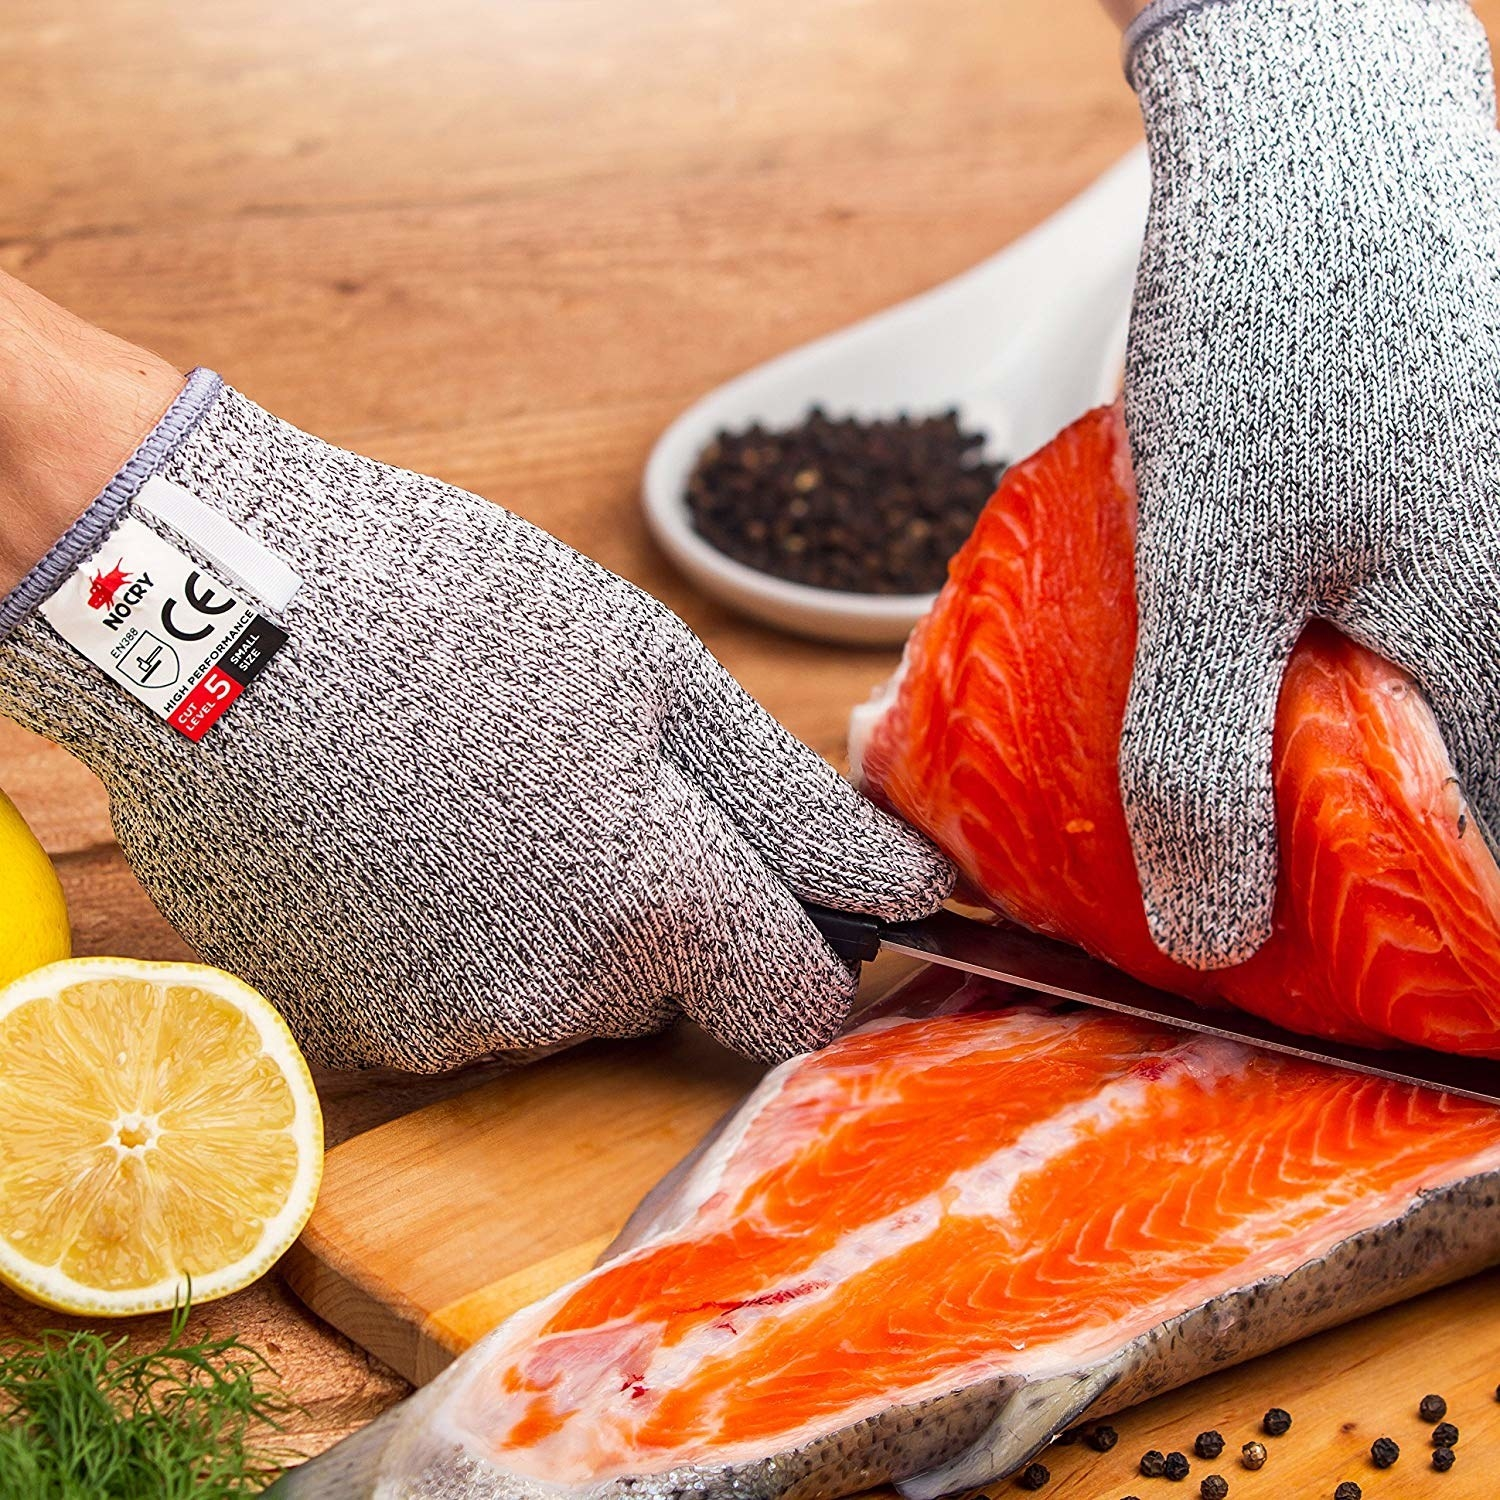 A person wearing the gloves while cutting fish